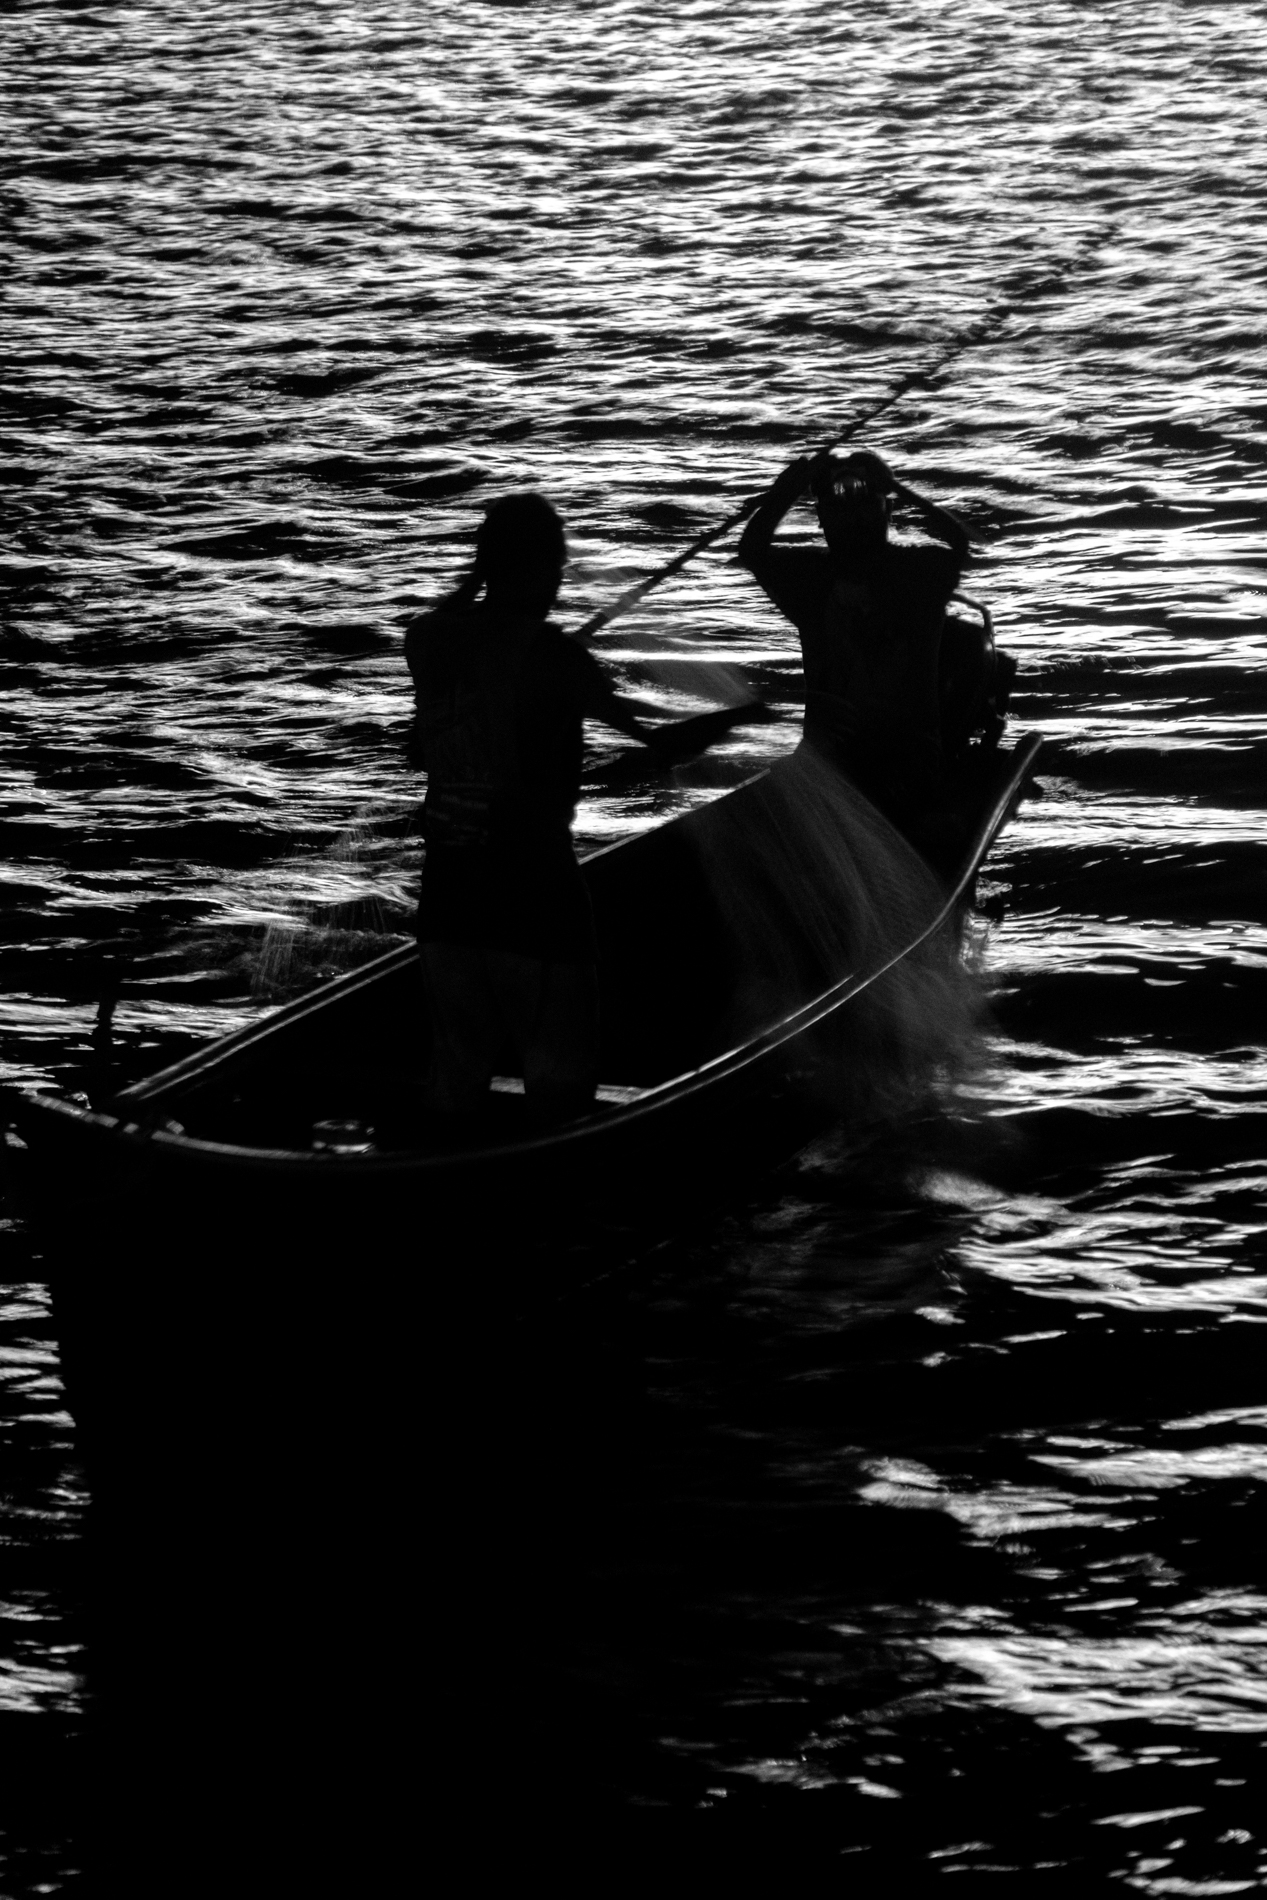 Risking their lifes, by doing such a tough job of fishing in night.